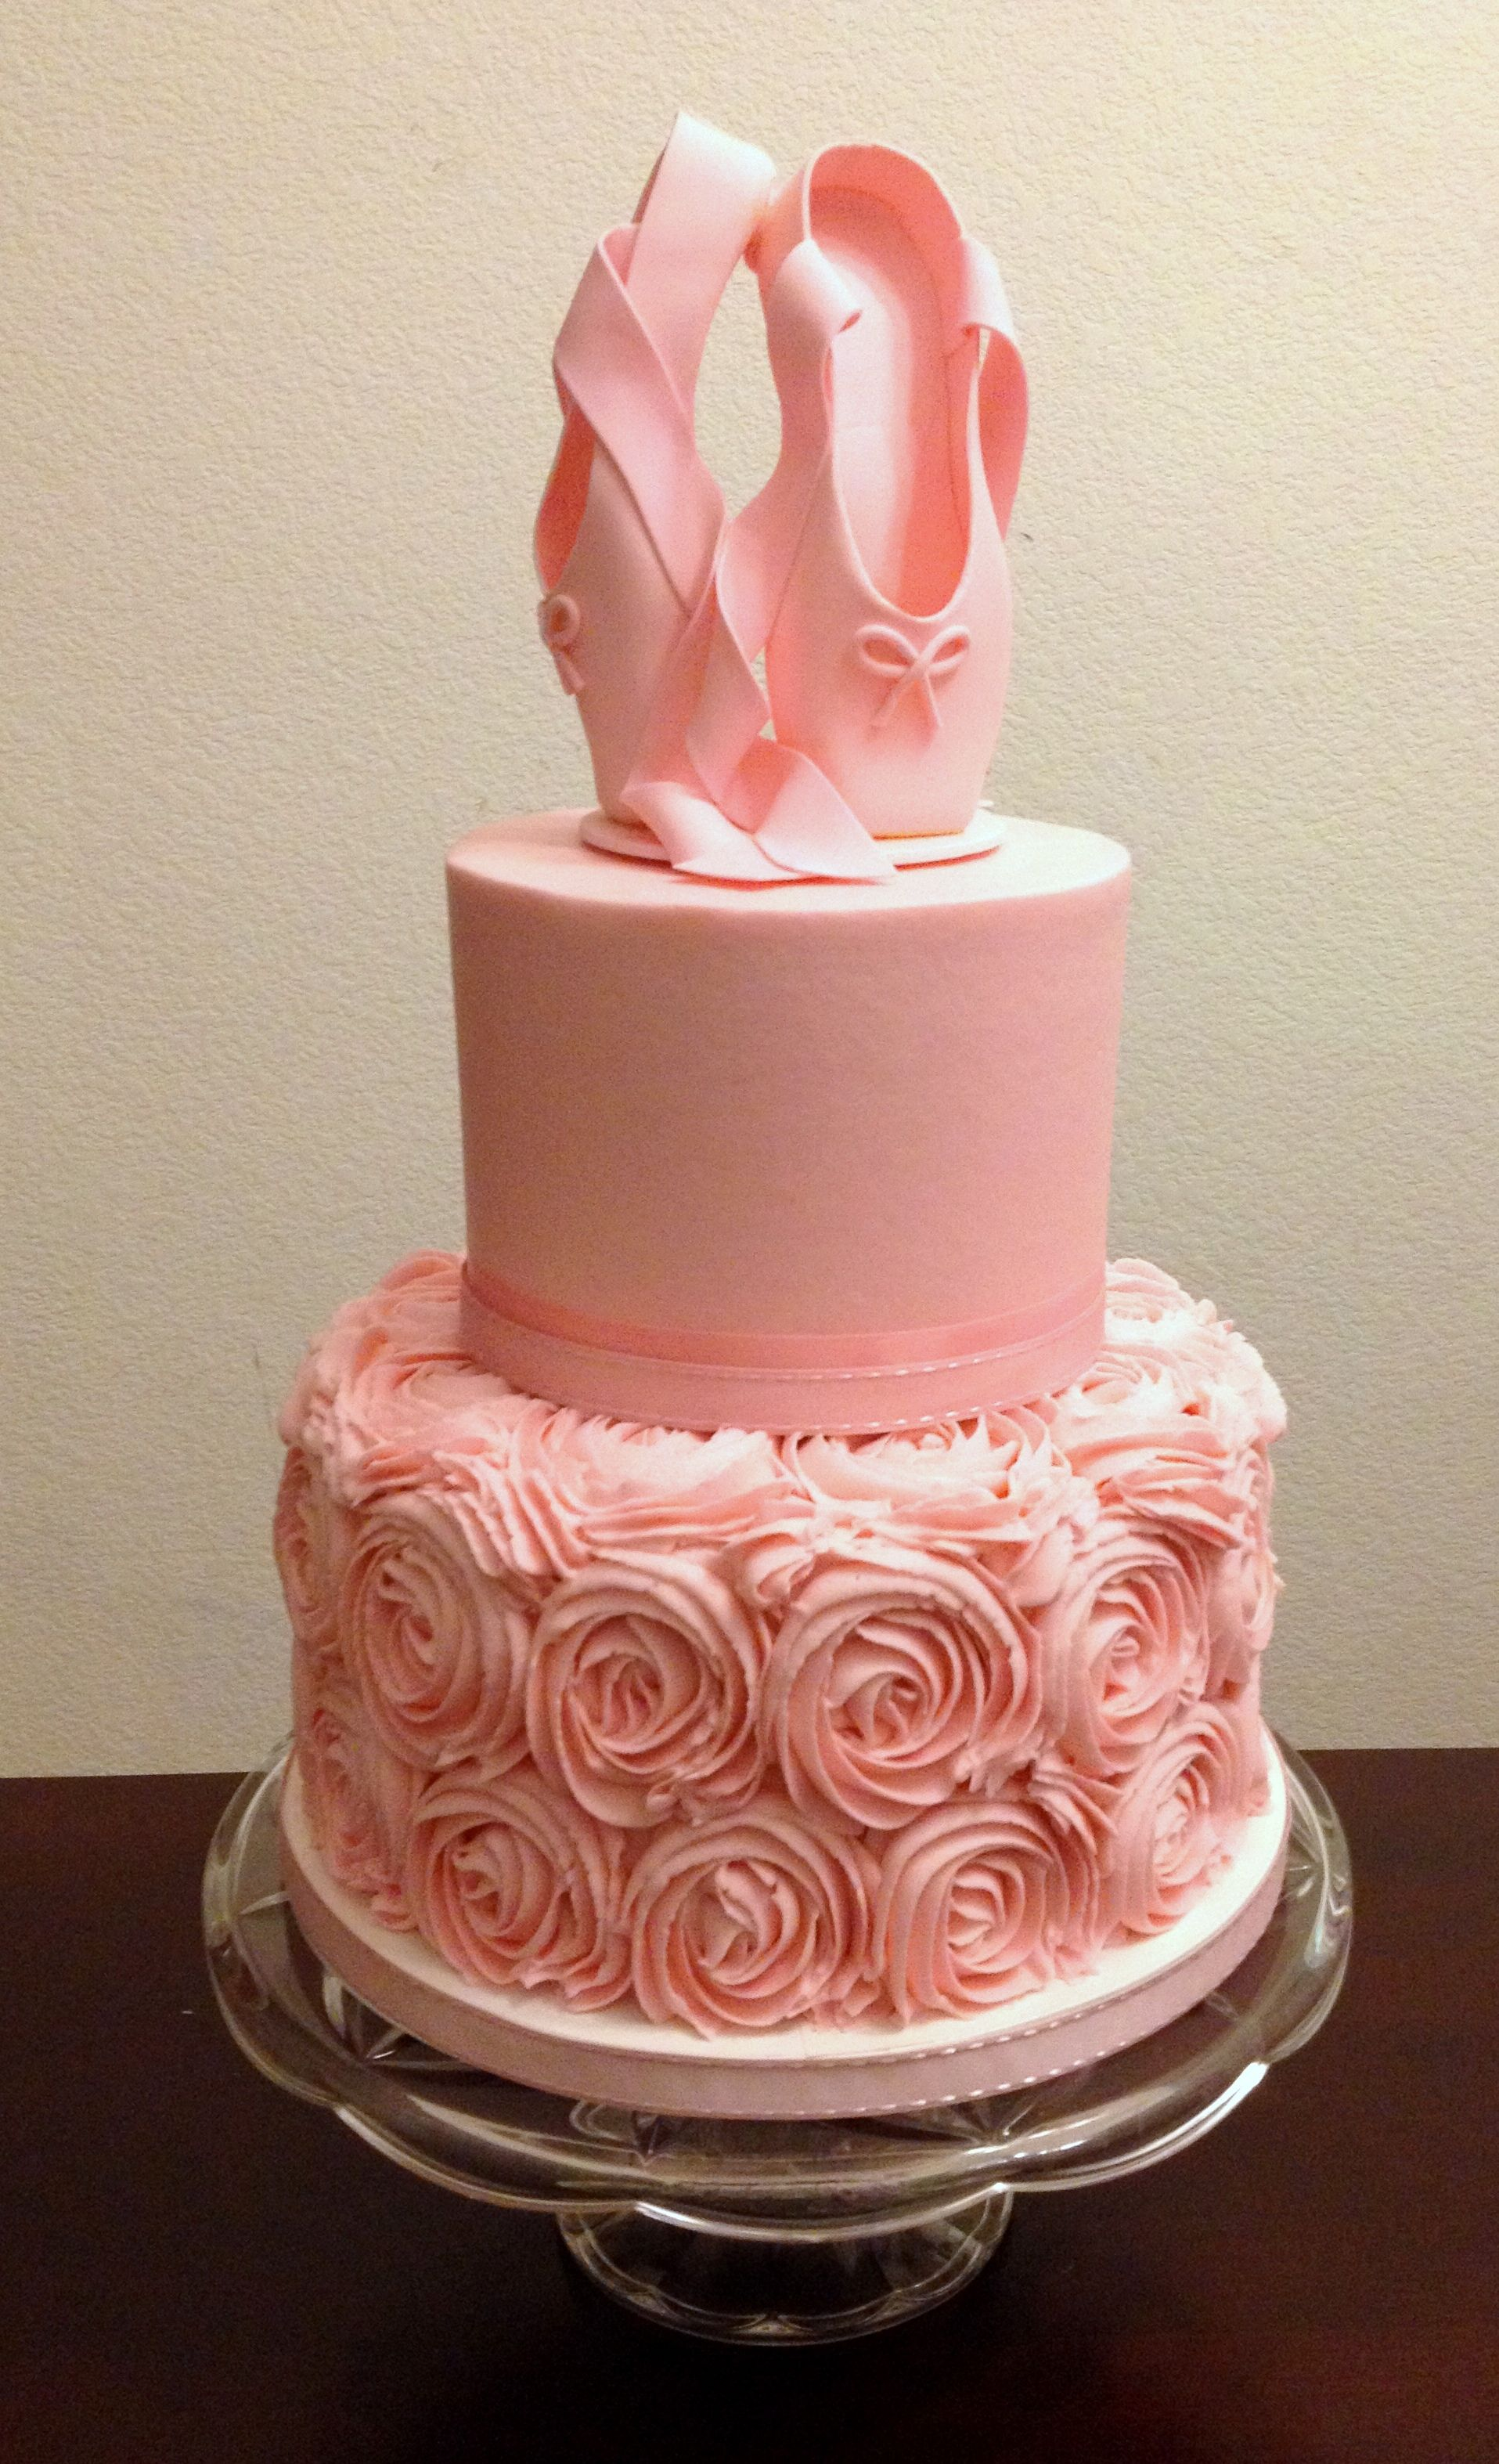 Pin By Sara Abraham On Hobby Cakes Ballet Cakes Cake